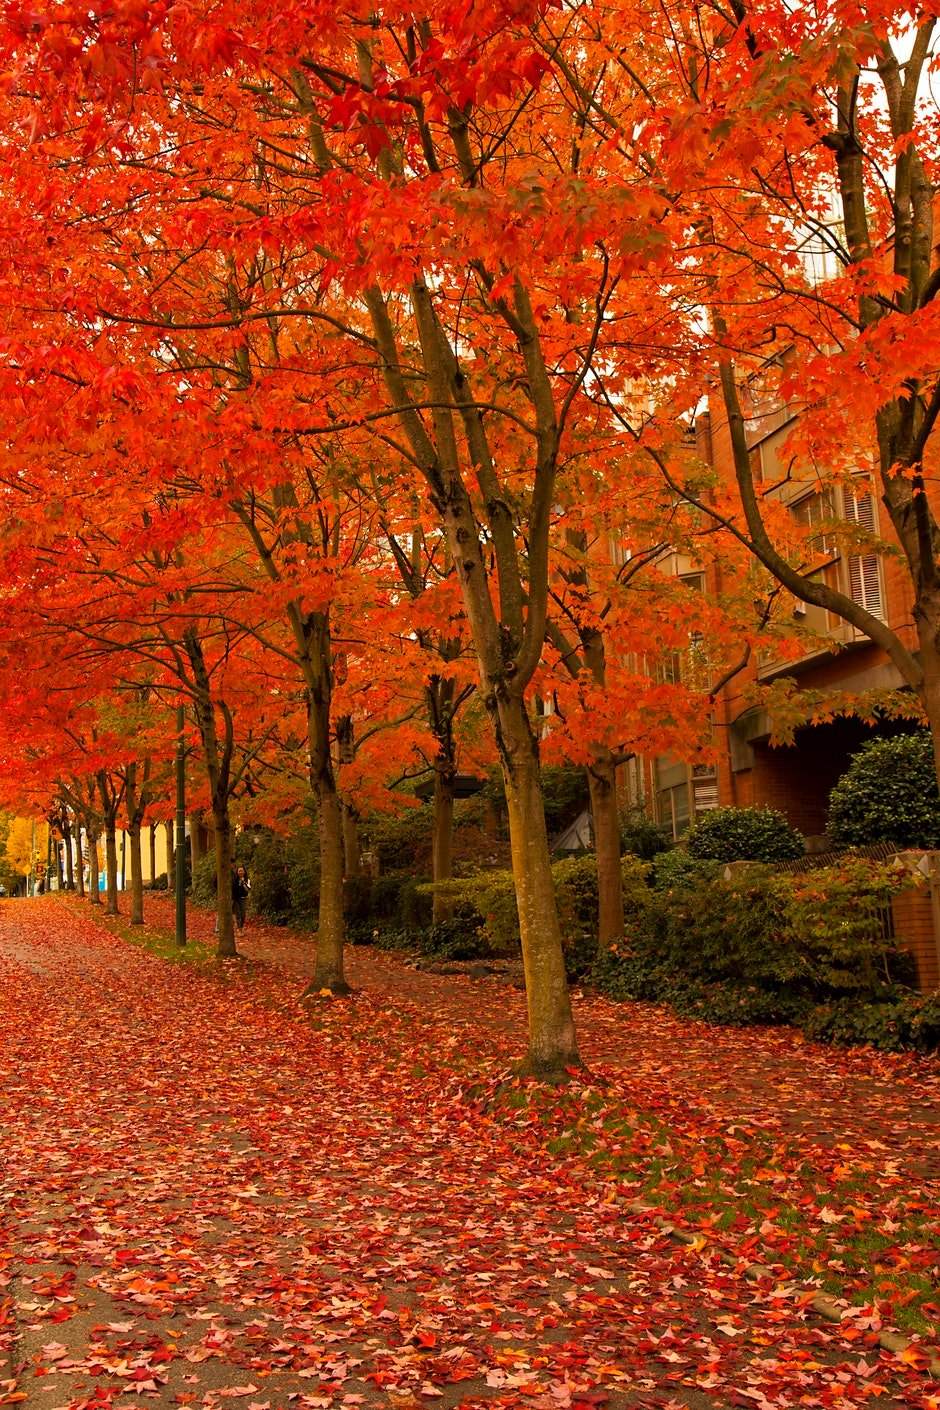 Orange Leafed Trees on Pathway